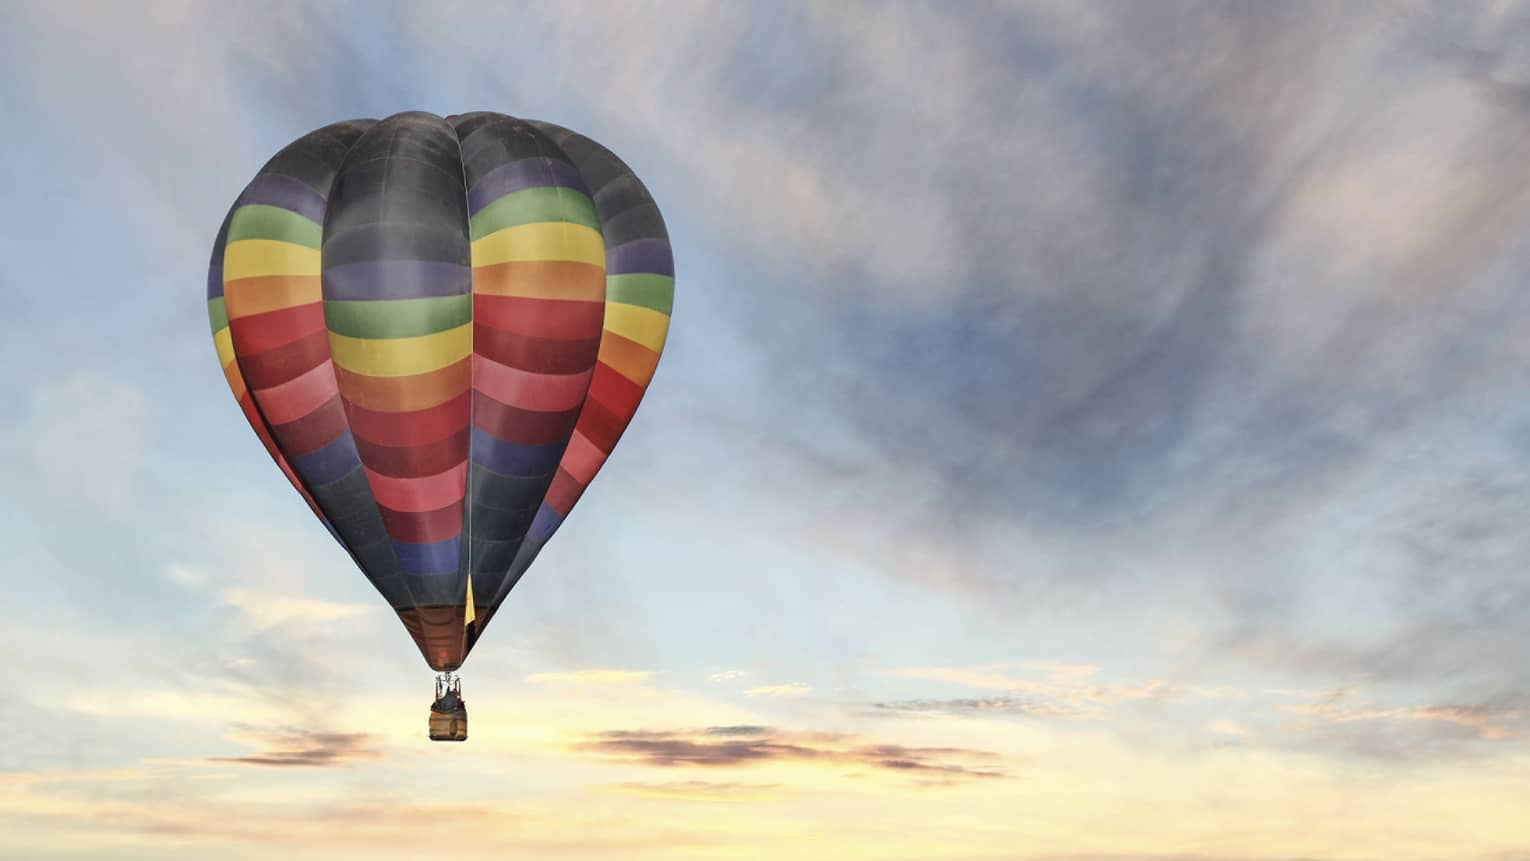 Rainbow-striped hot air balloon floats in the sky at sunset